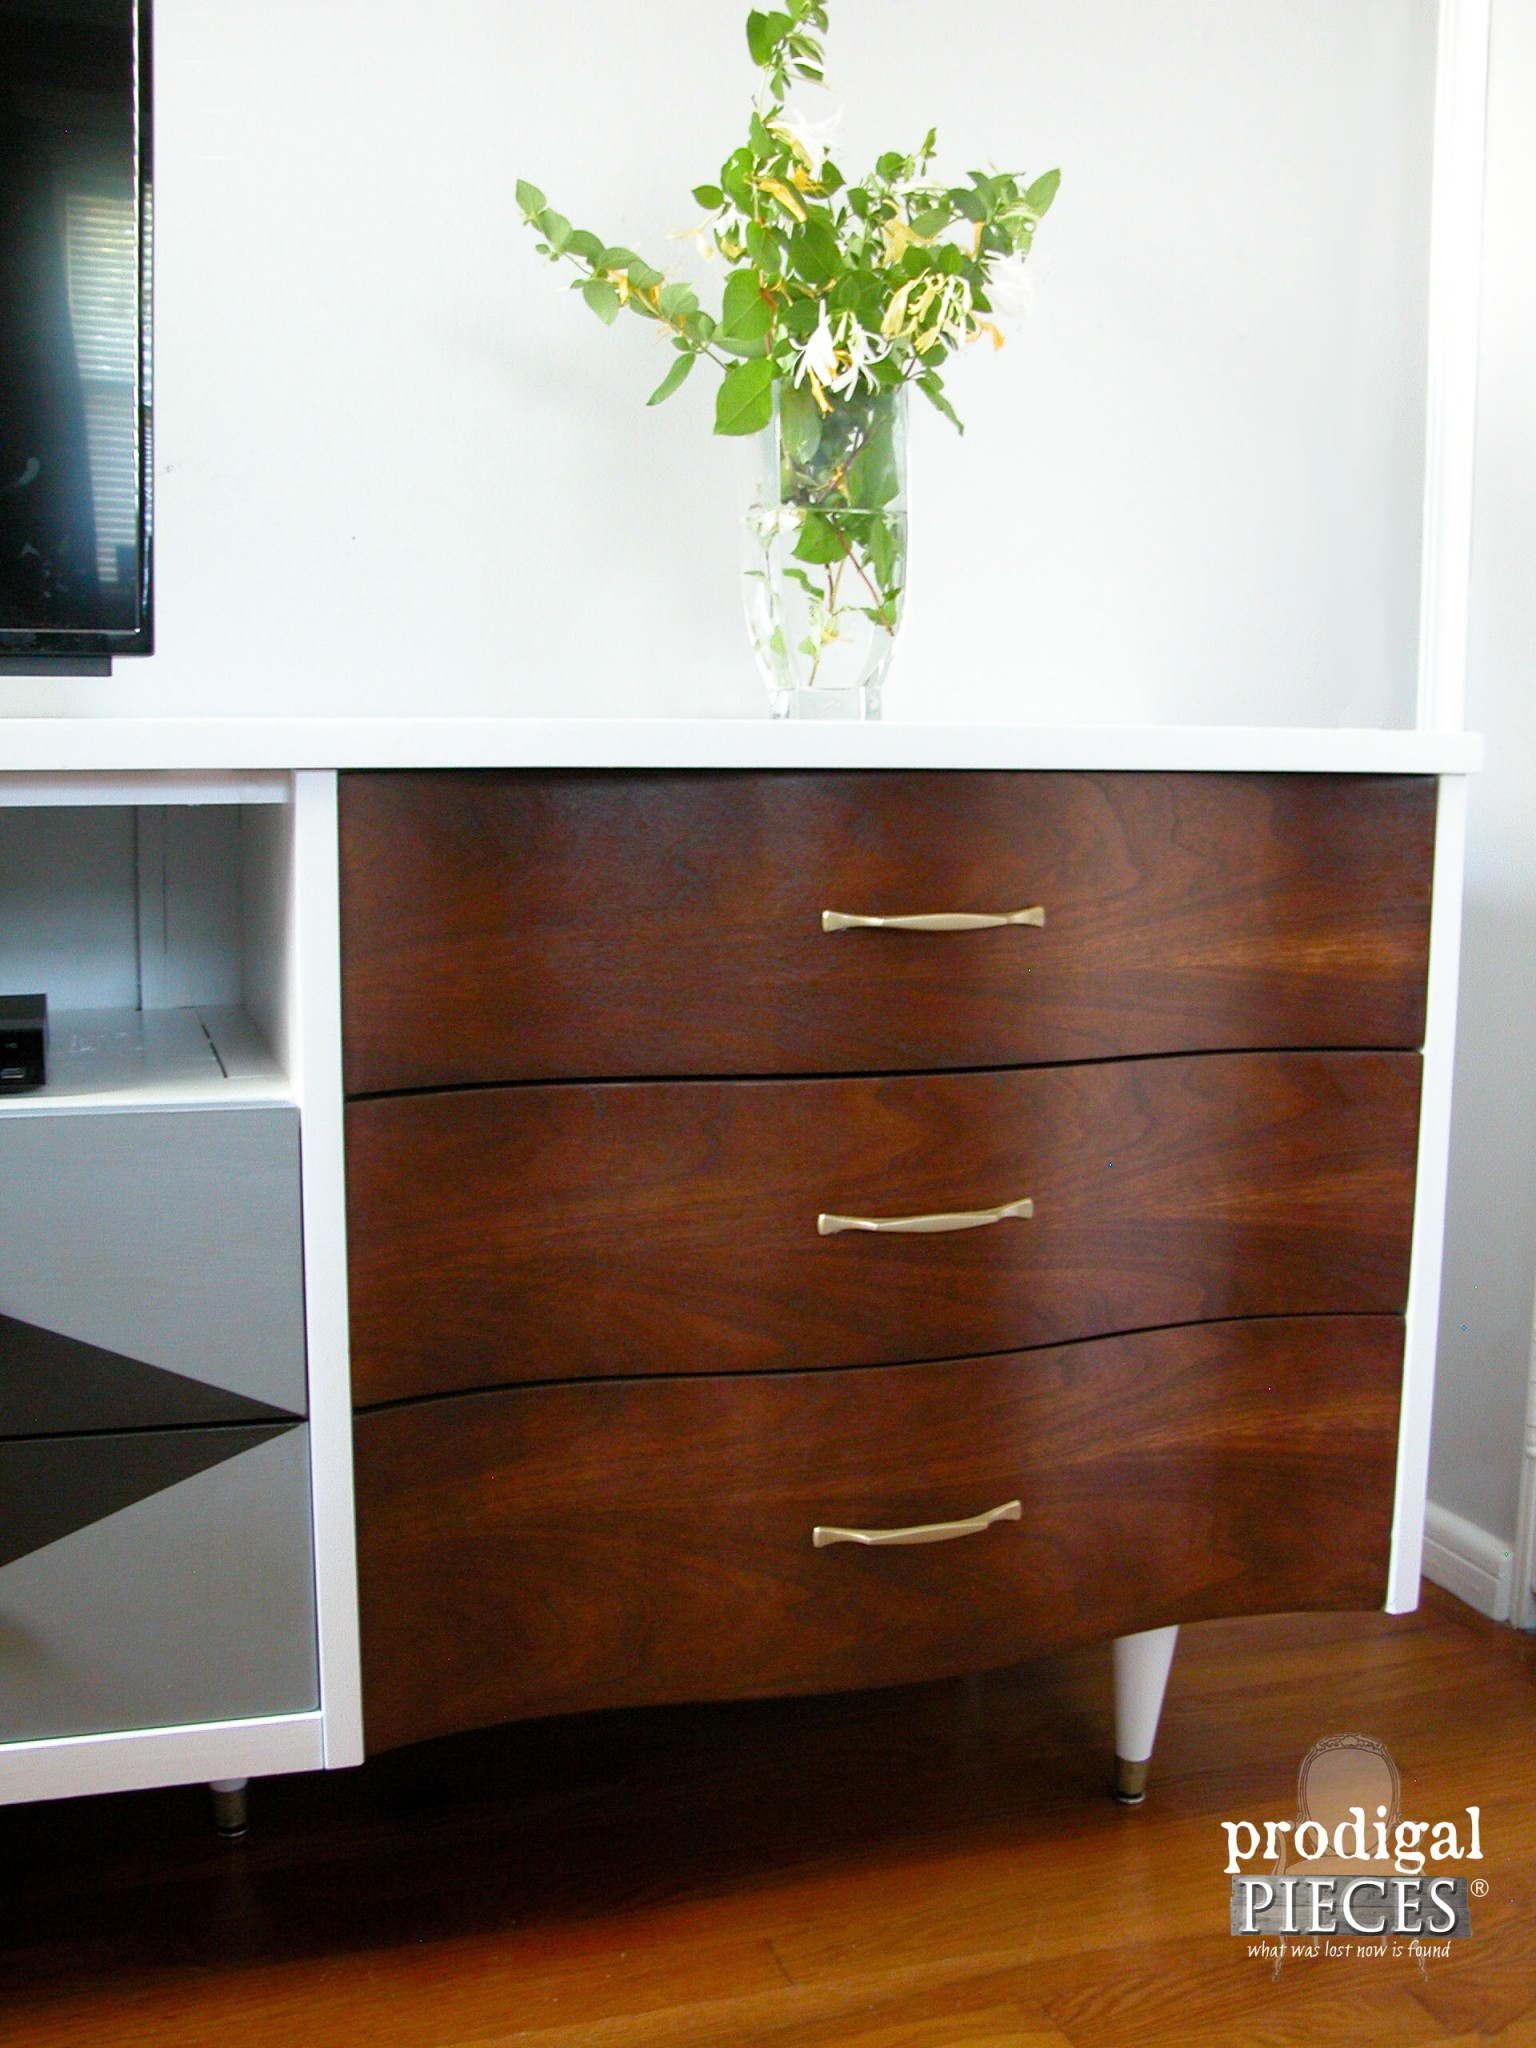 Early American Stained Drawer Fronts on Mid Century Console by Prodigal Pieces | www.prodigalpieces.com